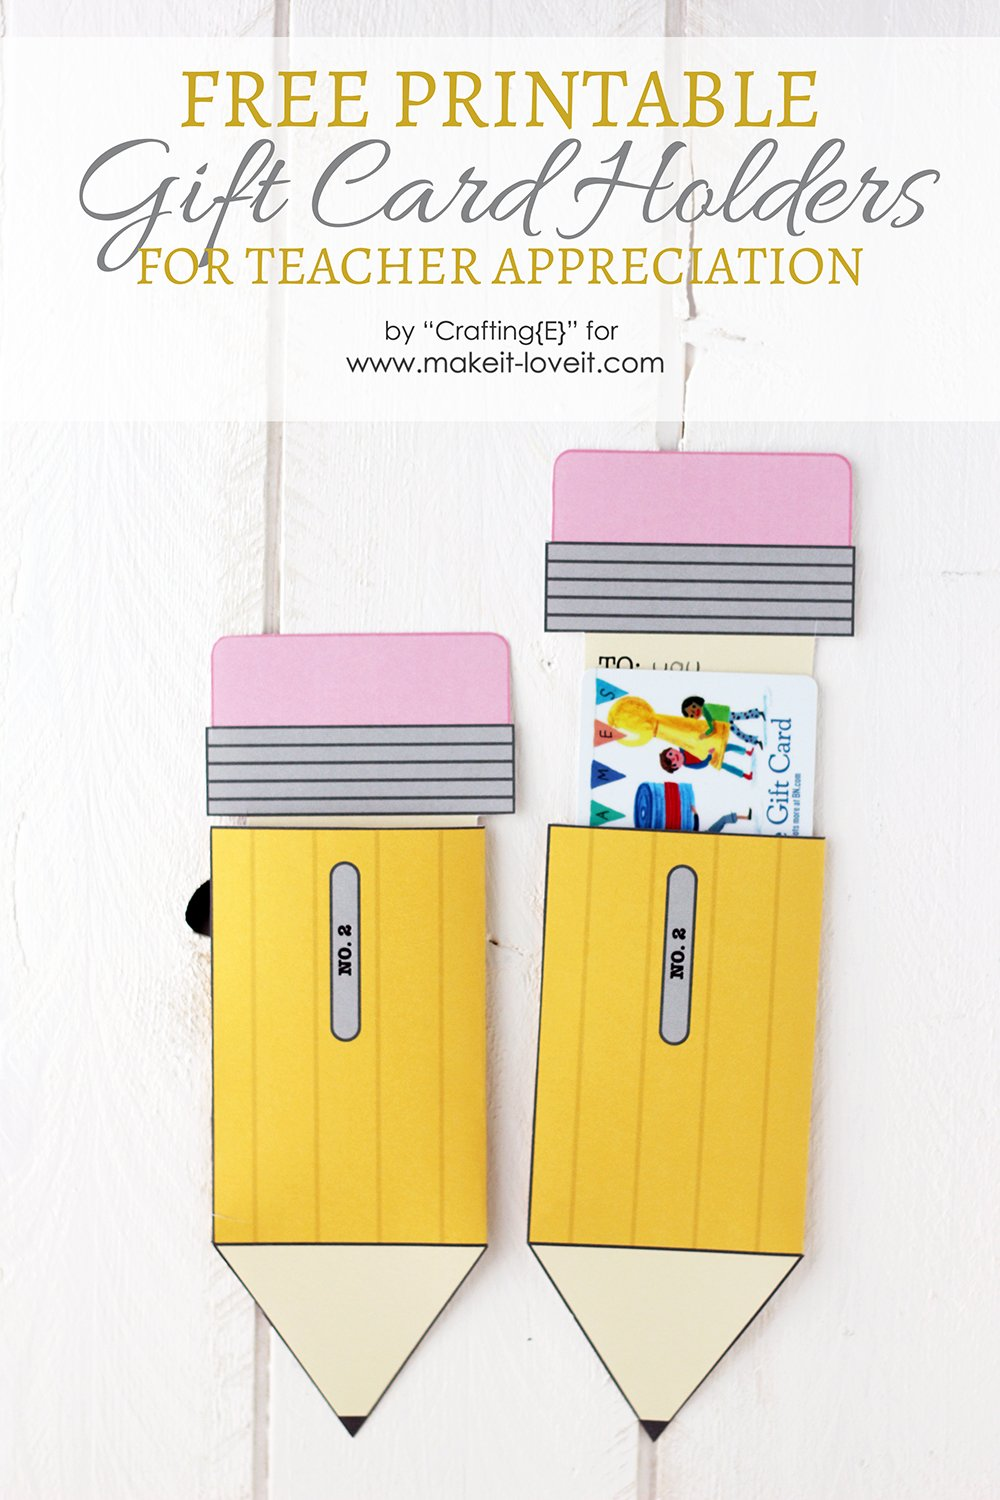 Free printable gift card holders for teacher appreciation